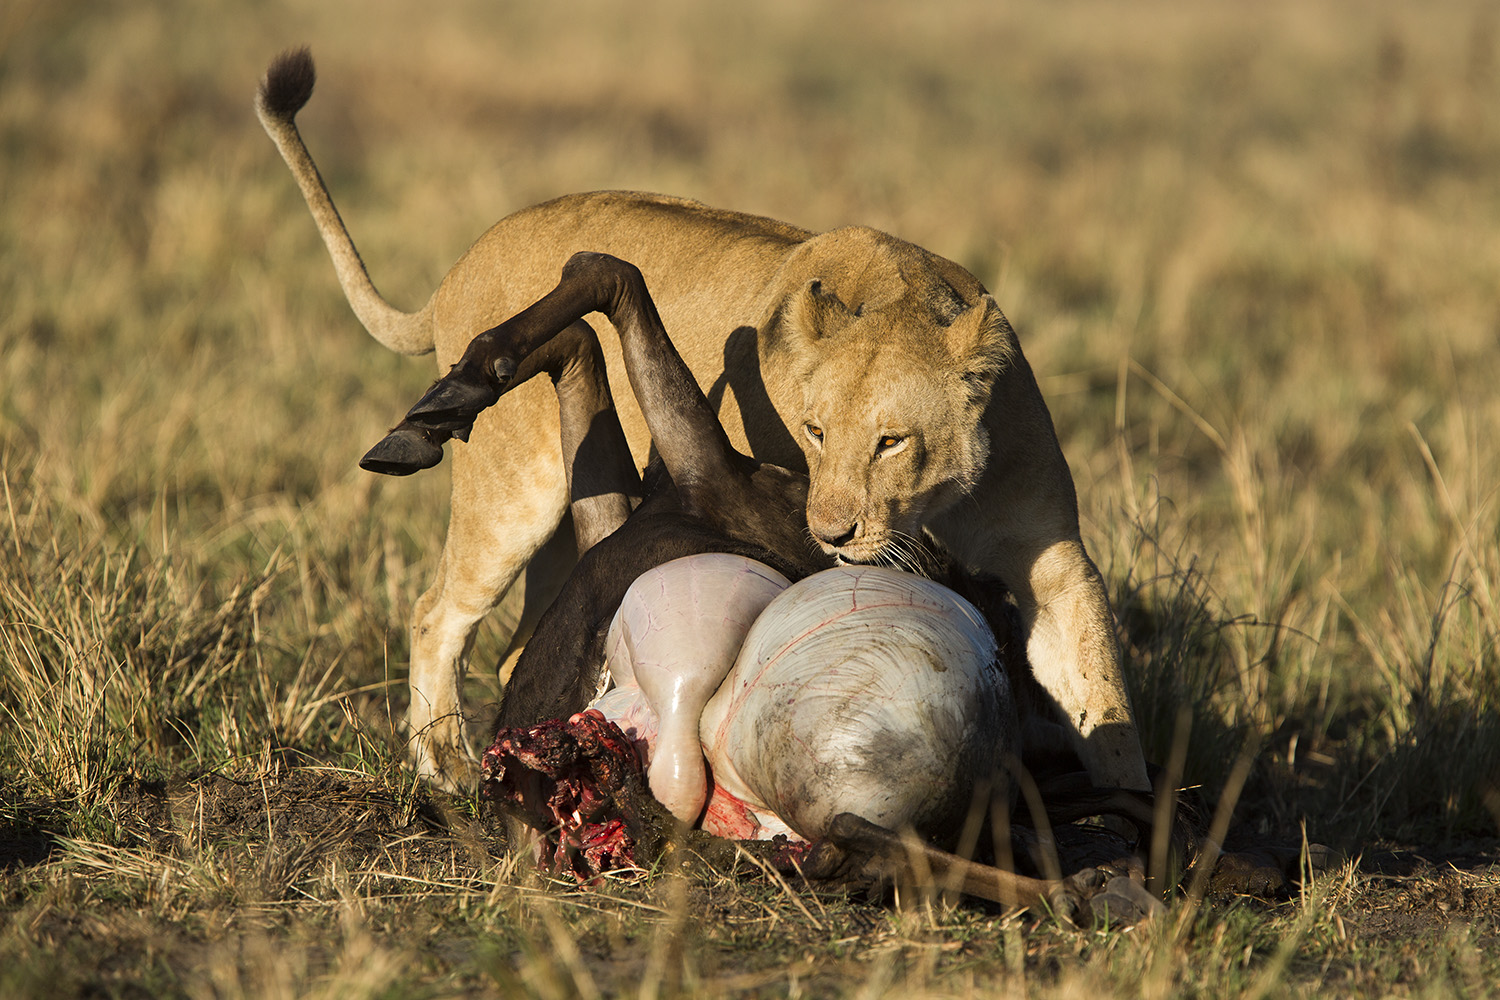 Sausage tree lioness moving wildebeest hunting